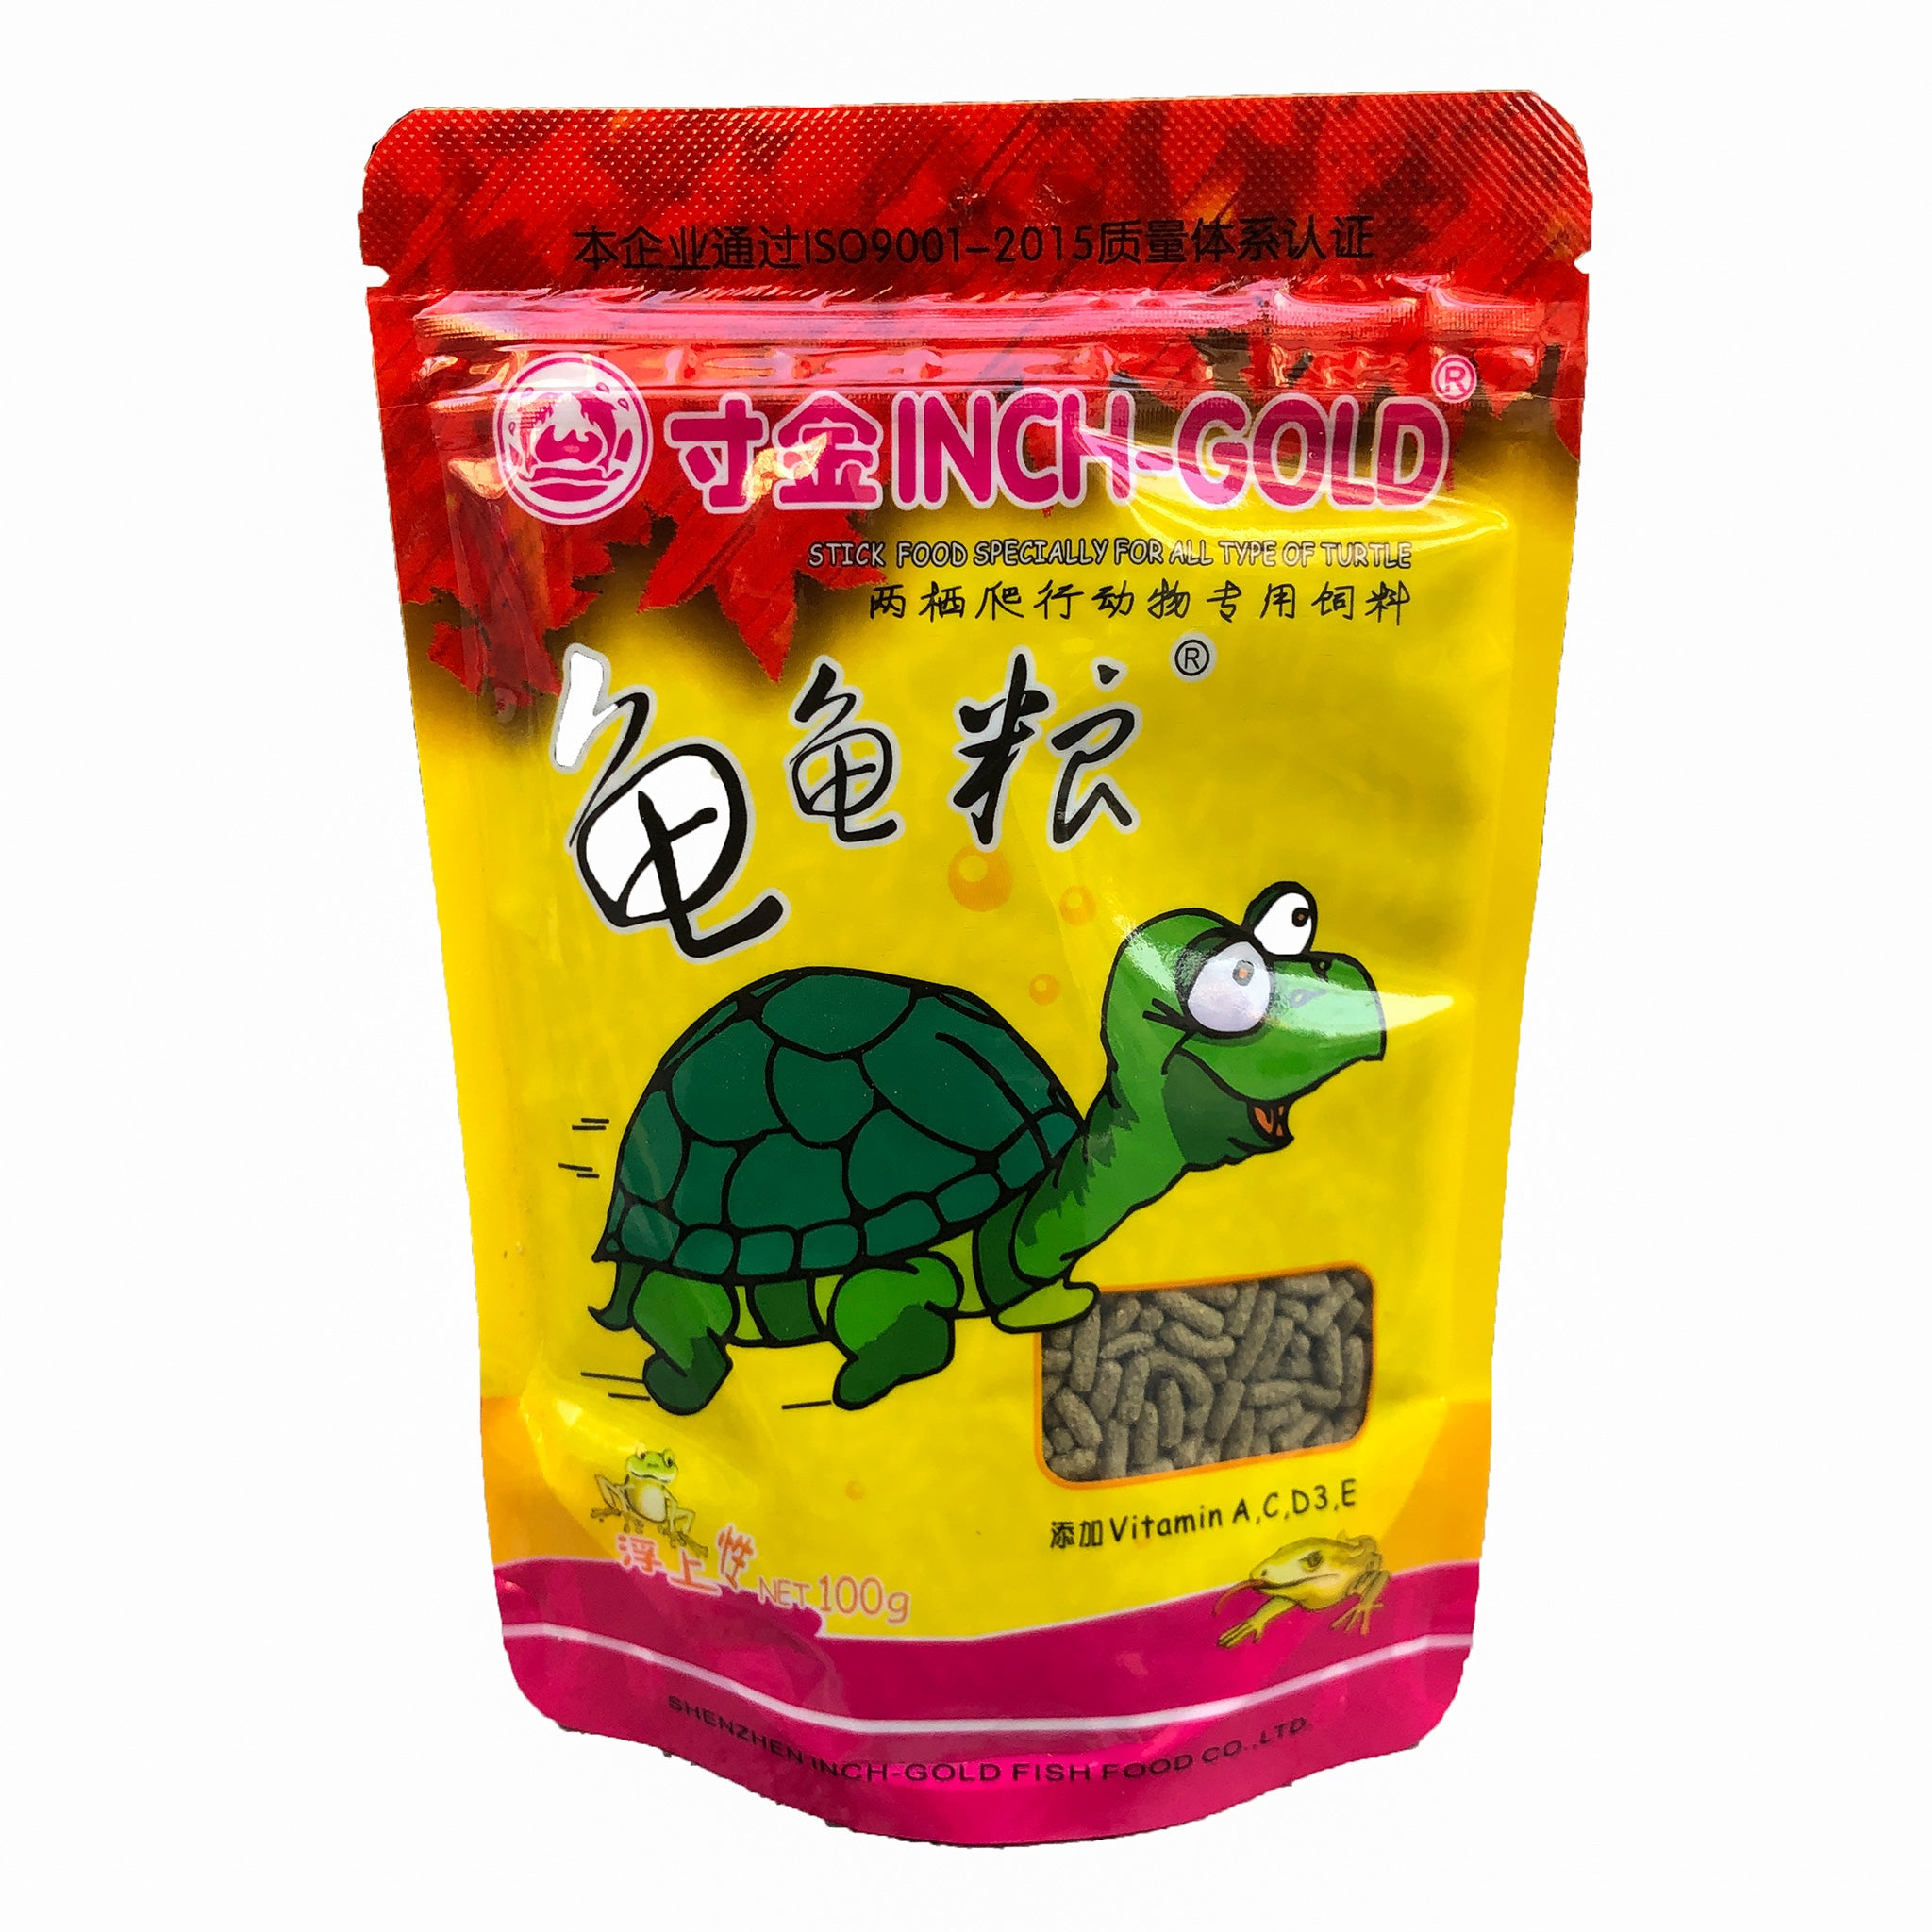 Turtle-stick-food-Turtle-food-Online-shopping-nepalaquastudio